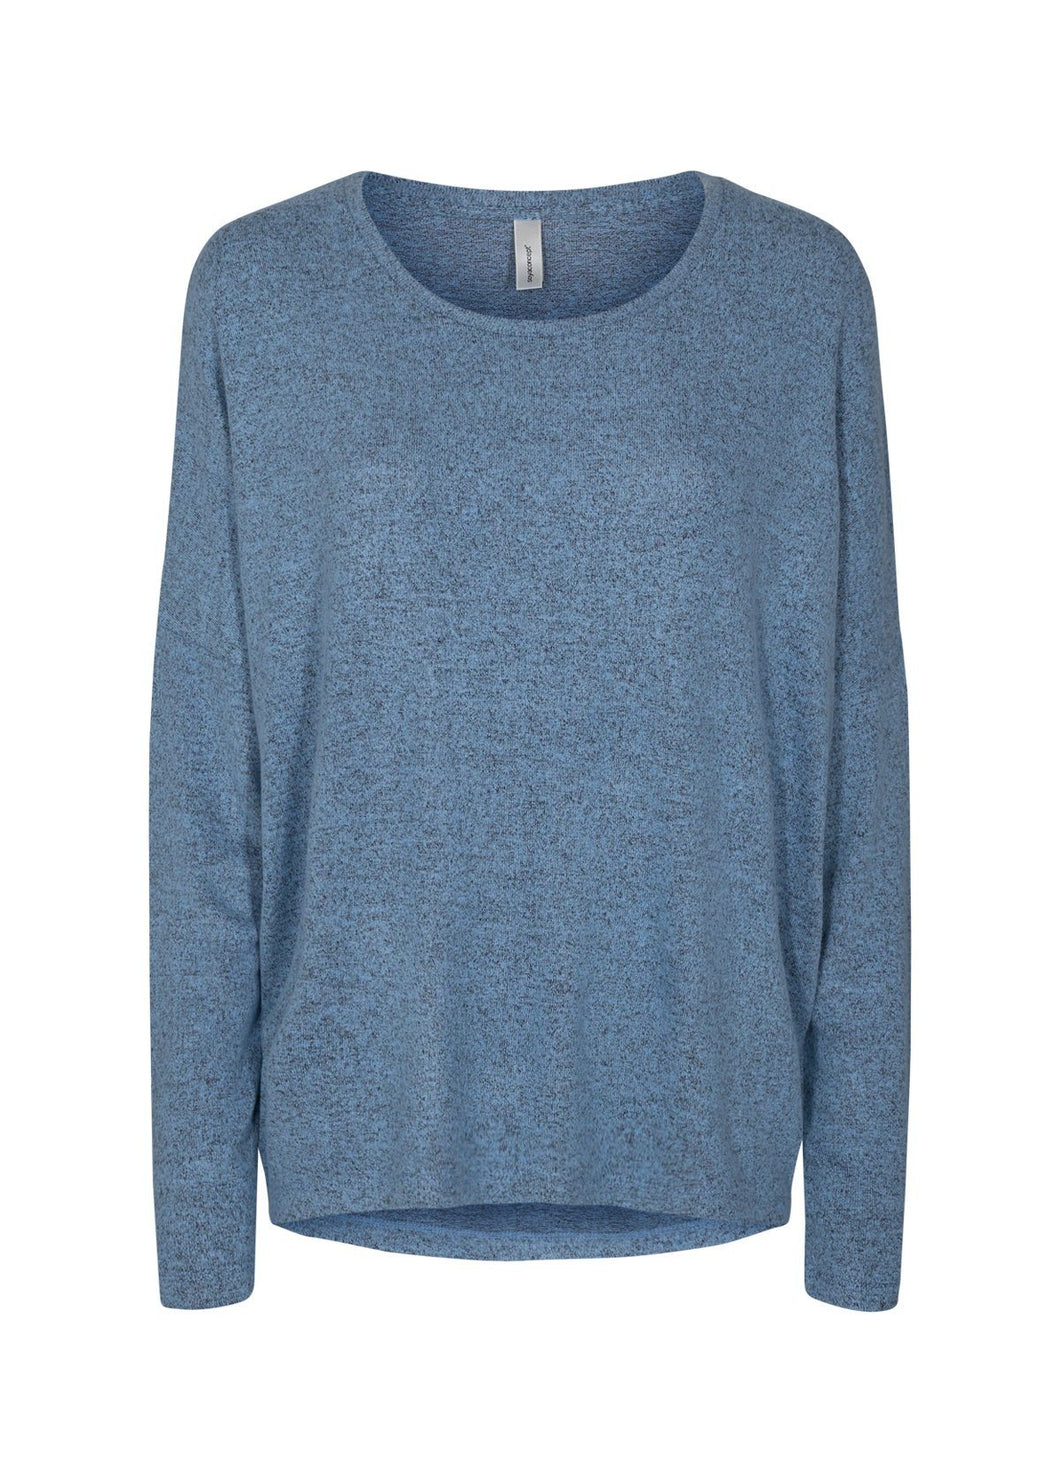 Biara Sweater in Blue - Renaissance Boutiques Ireland